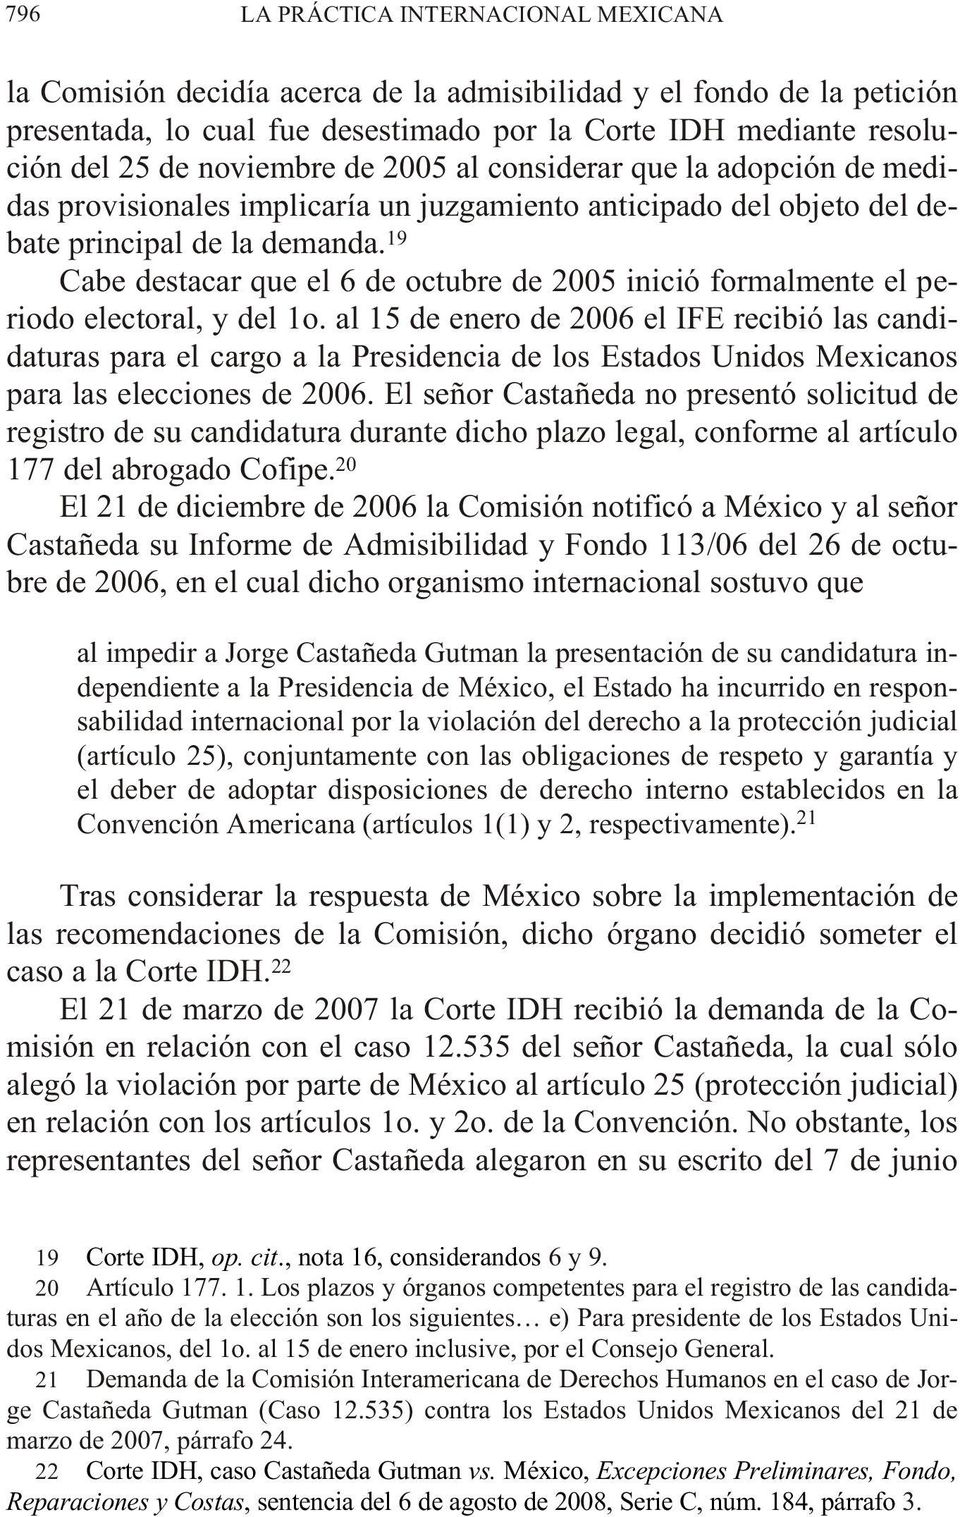 19 Cabe des ta car que el 6 de oc tu bre de 2005 ini ció for mal men te el pe - rio do elec to ral, y del 1o.